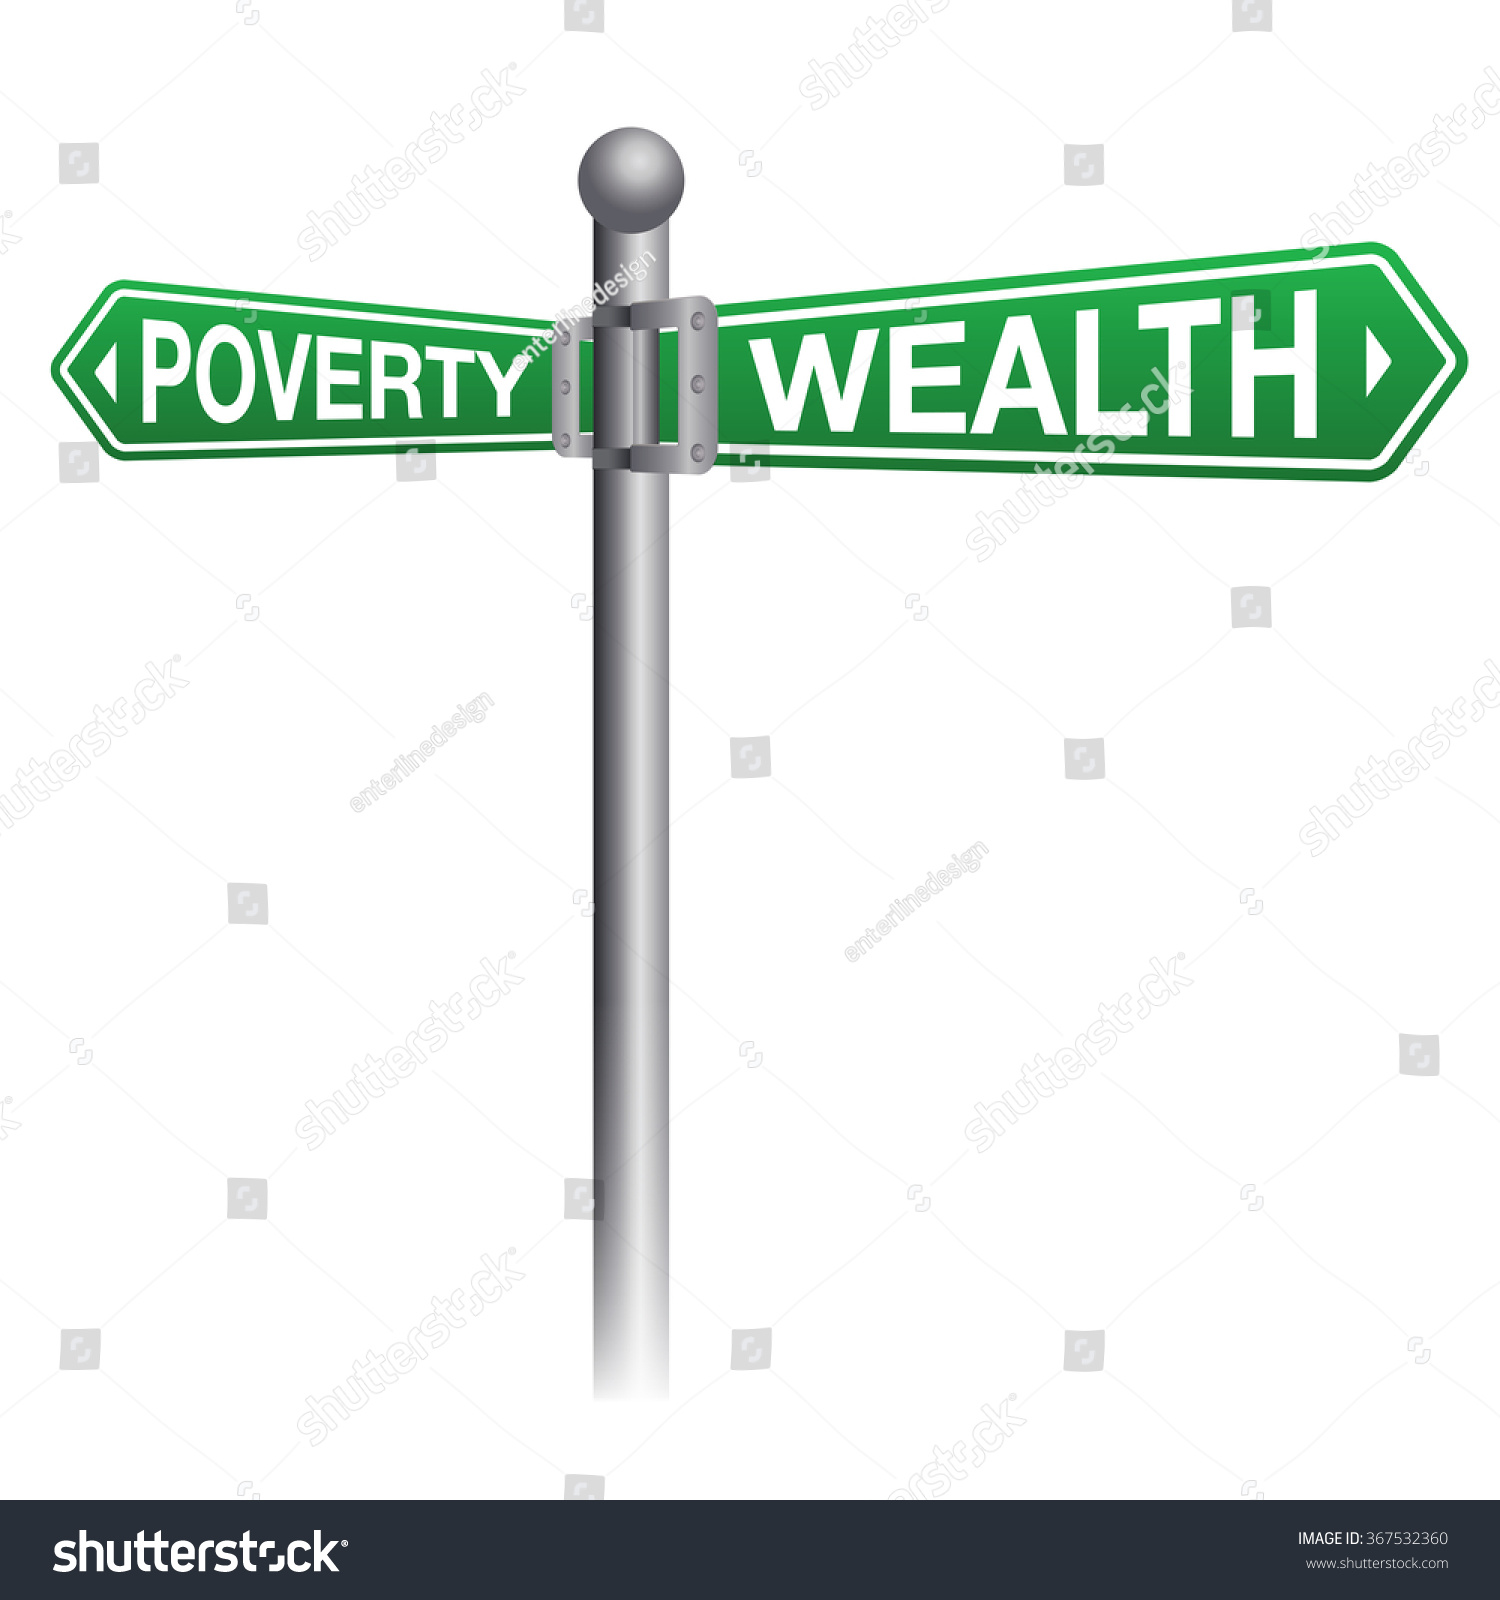 poverty vs wealth essay What is poverty essay words  is very hard to underestimate the novel as it reveals how superficial are the lives of people who care only about their wealth and in.